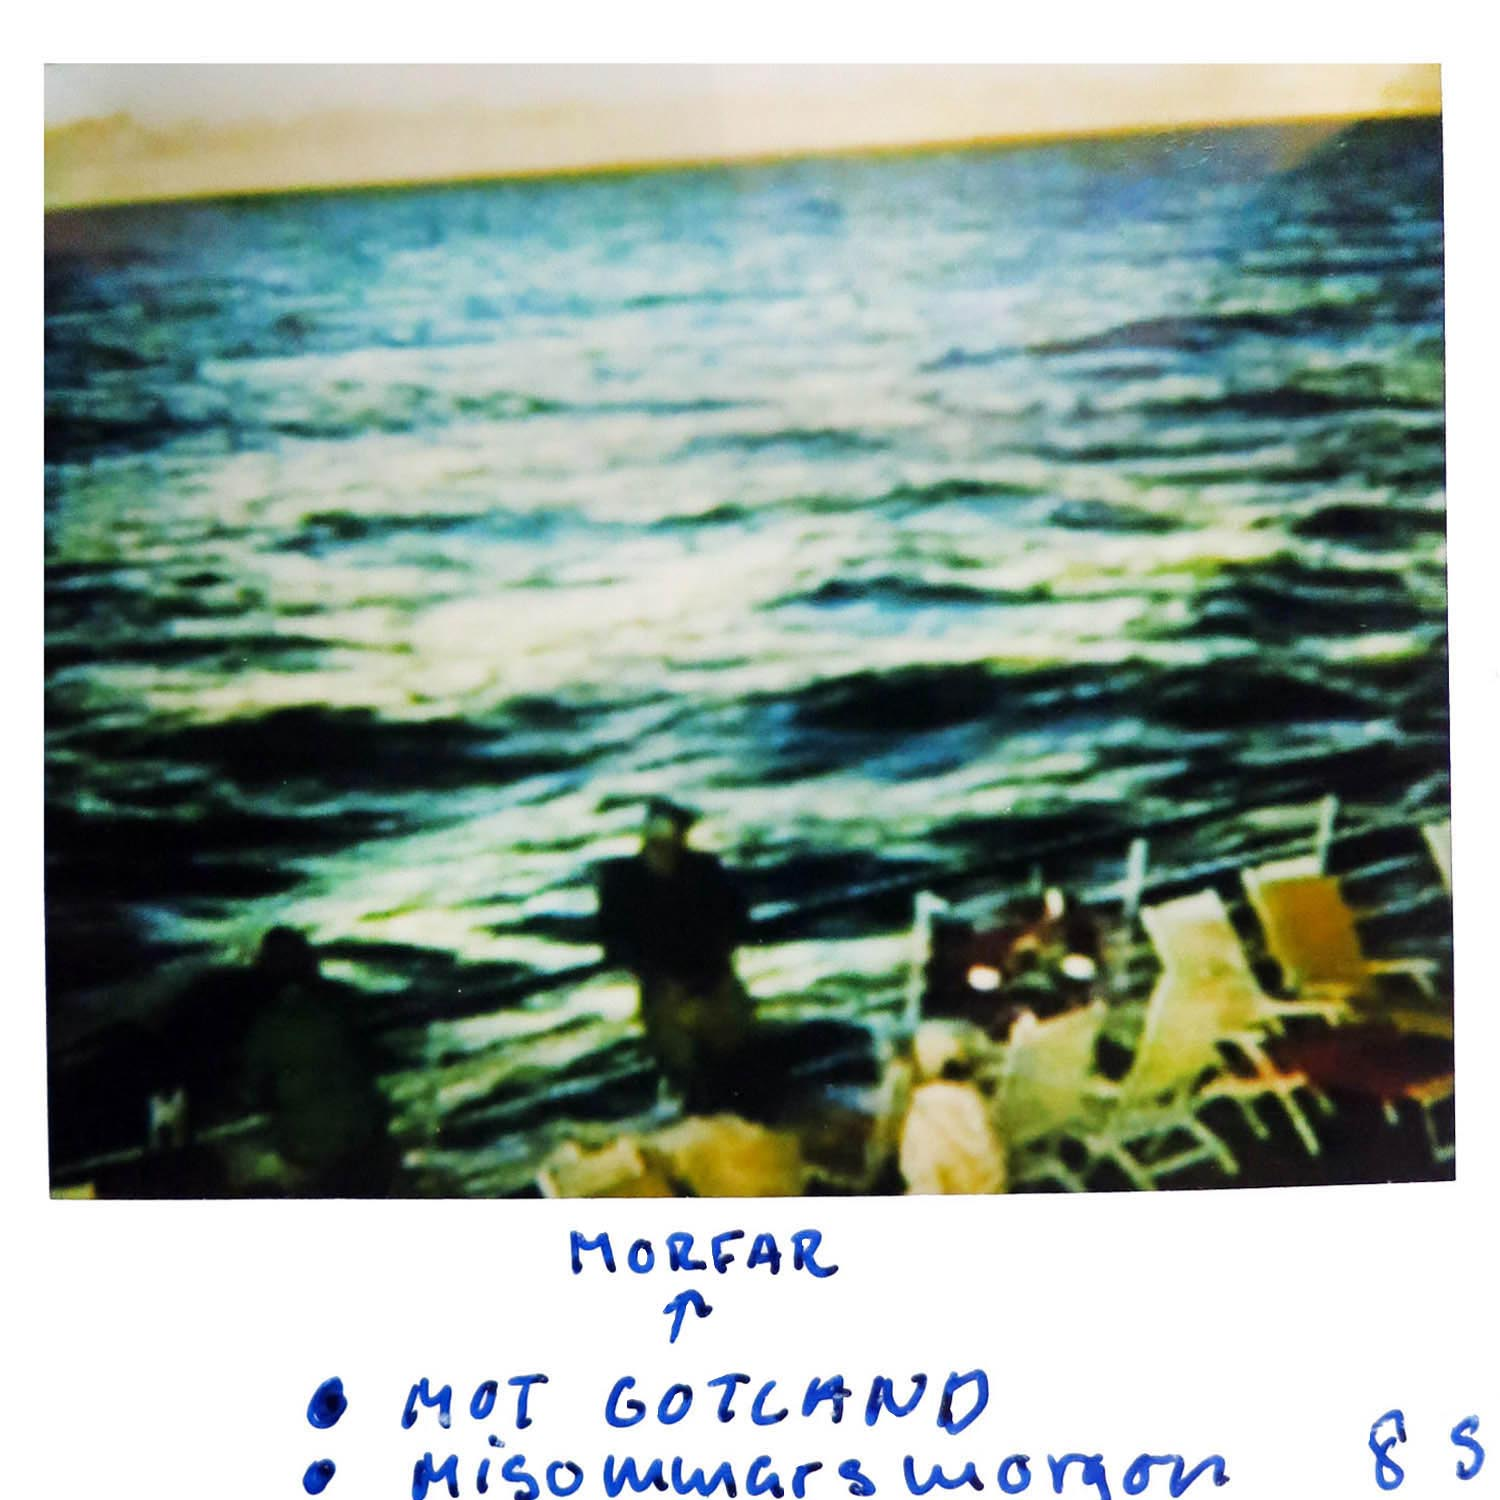 GRANDPA on the boat to Gotland  Midsummers morning -85